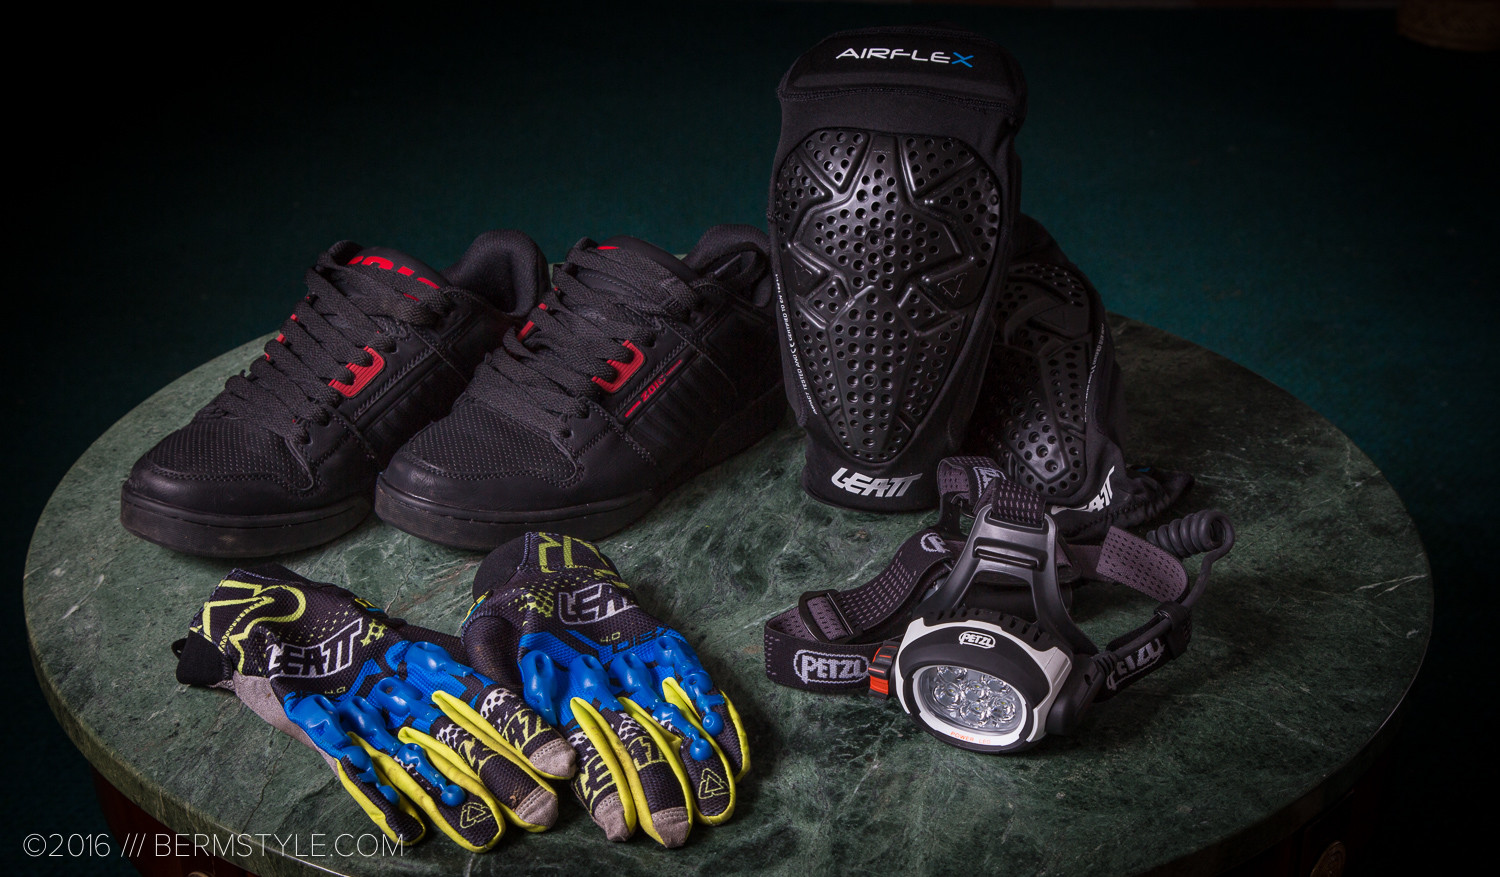 Fresh Gear: Zoic Prophet Shoes, Leatt Airflex Knee Pads, Gloves and Petzl UltraRush Headlamp